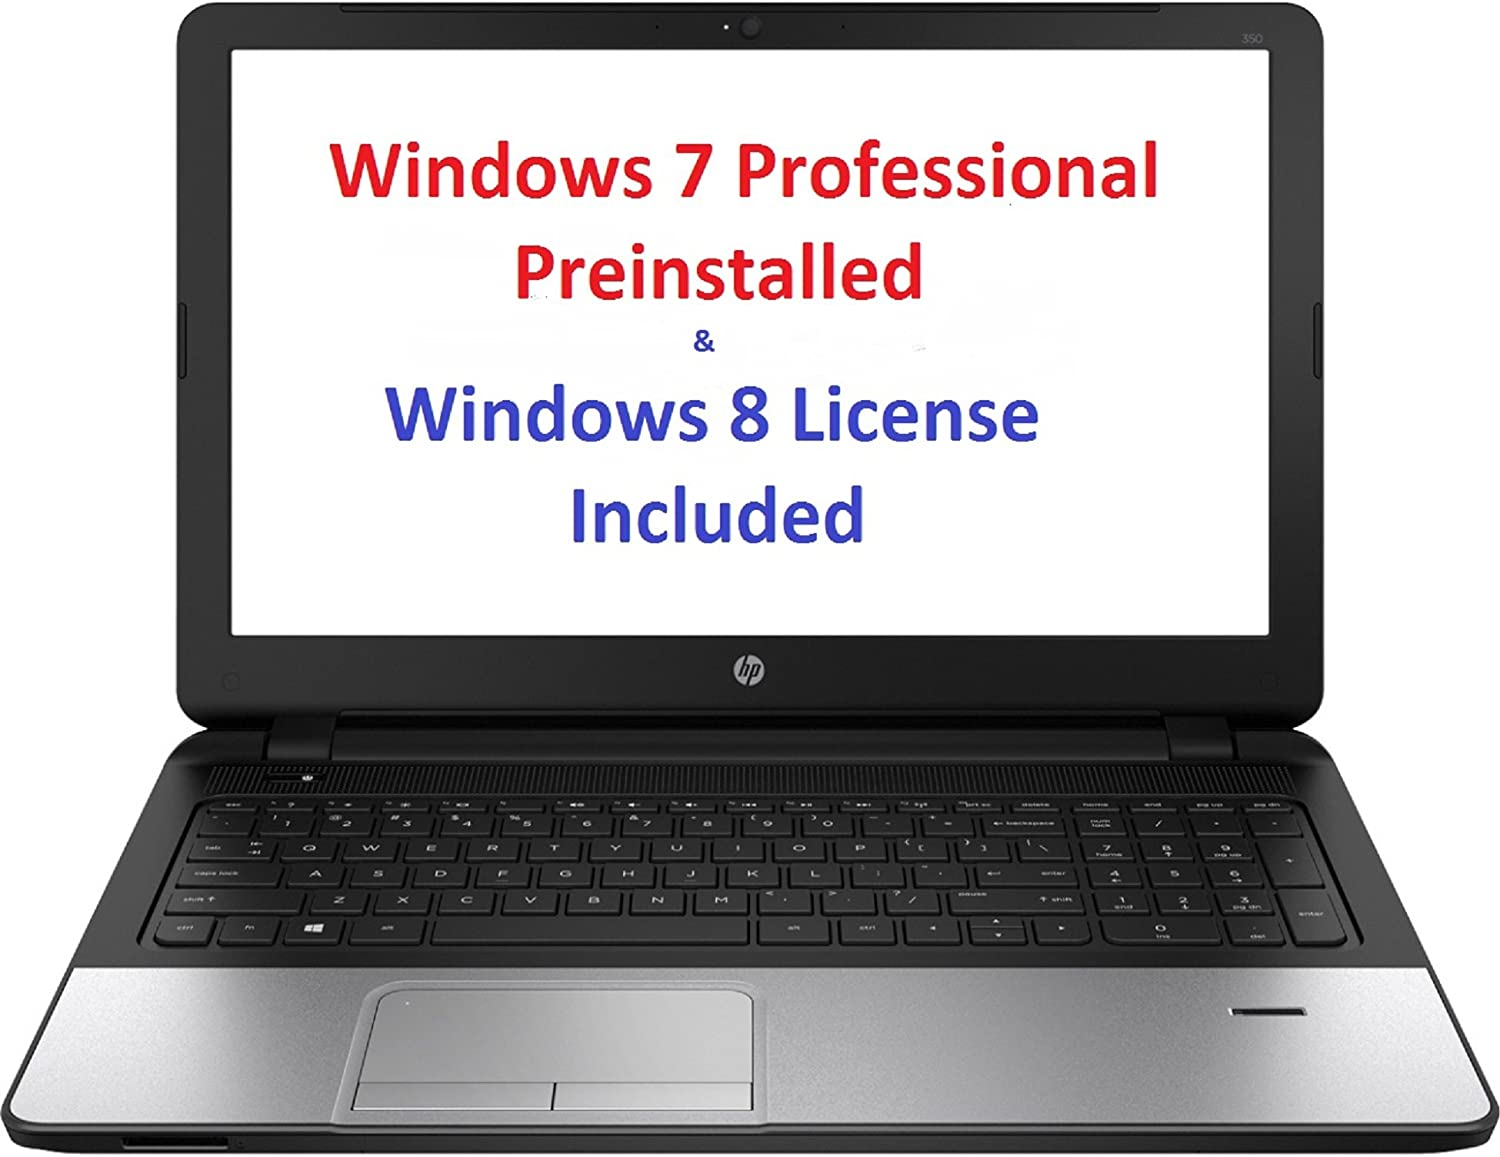 "HP 350 Notebook Intel Core i7 4510U (2.00GHz) 8GB Memory 500GB HDD Intel HD Graphics 4400 15.6"" Windows 7 Professional 64-Bit"